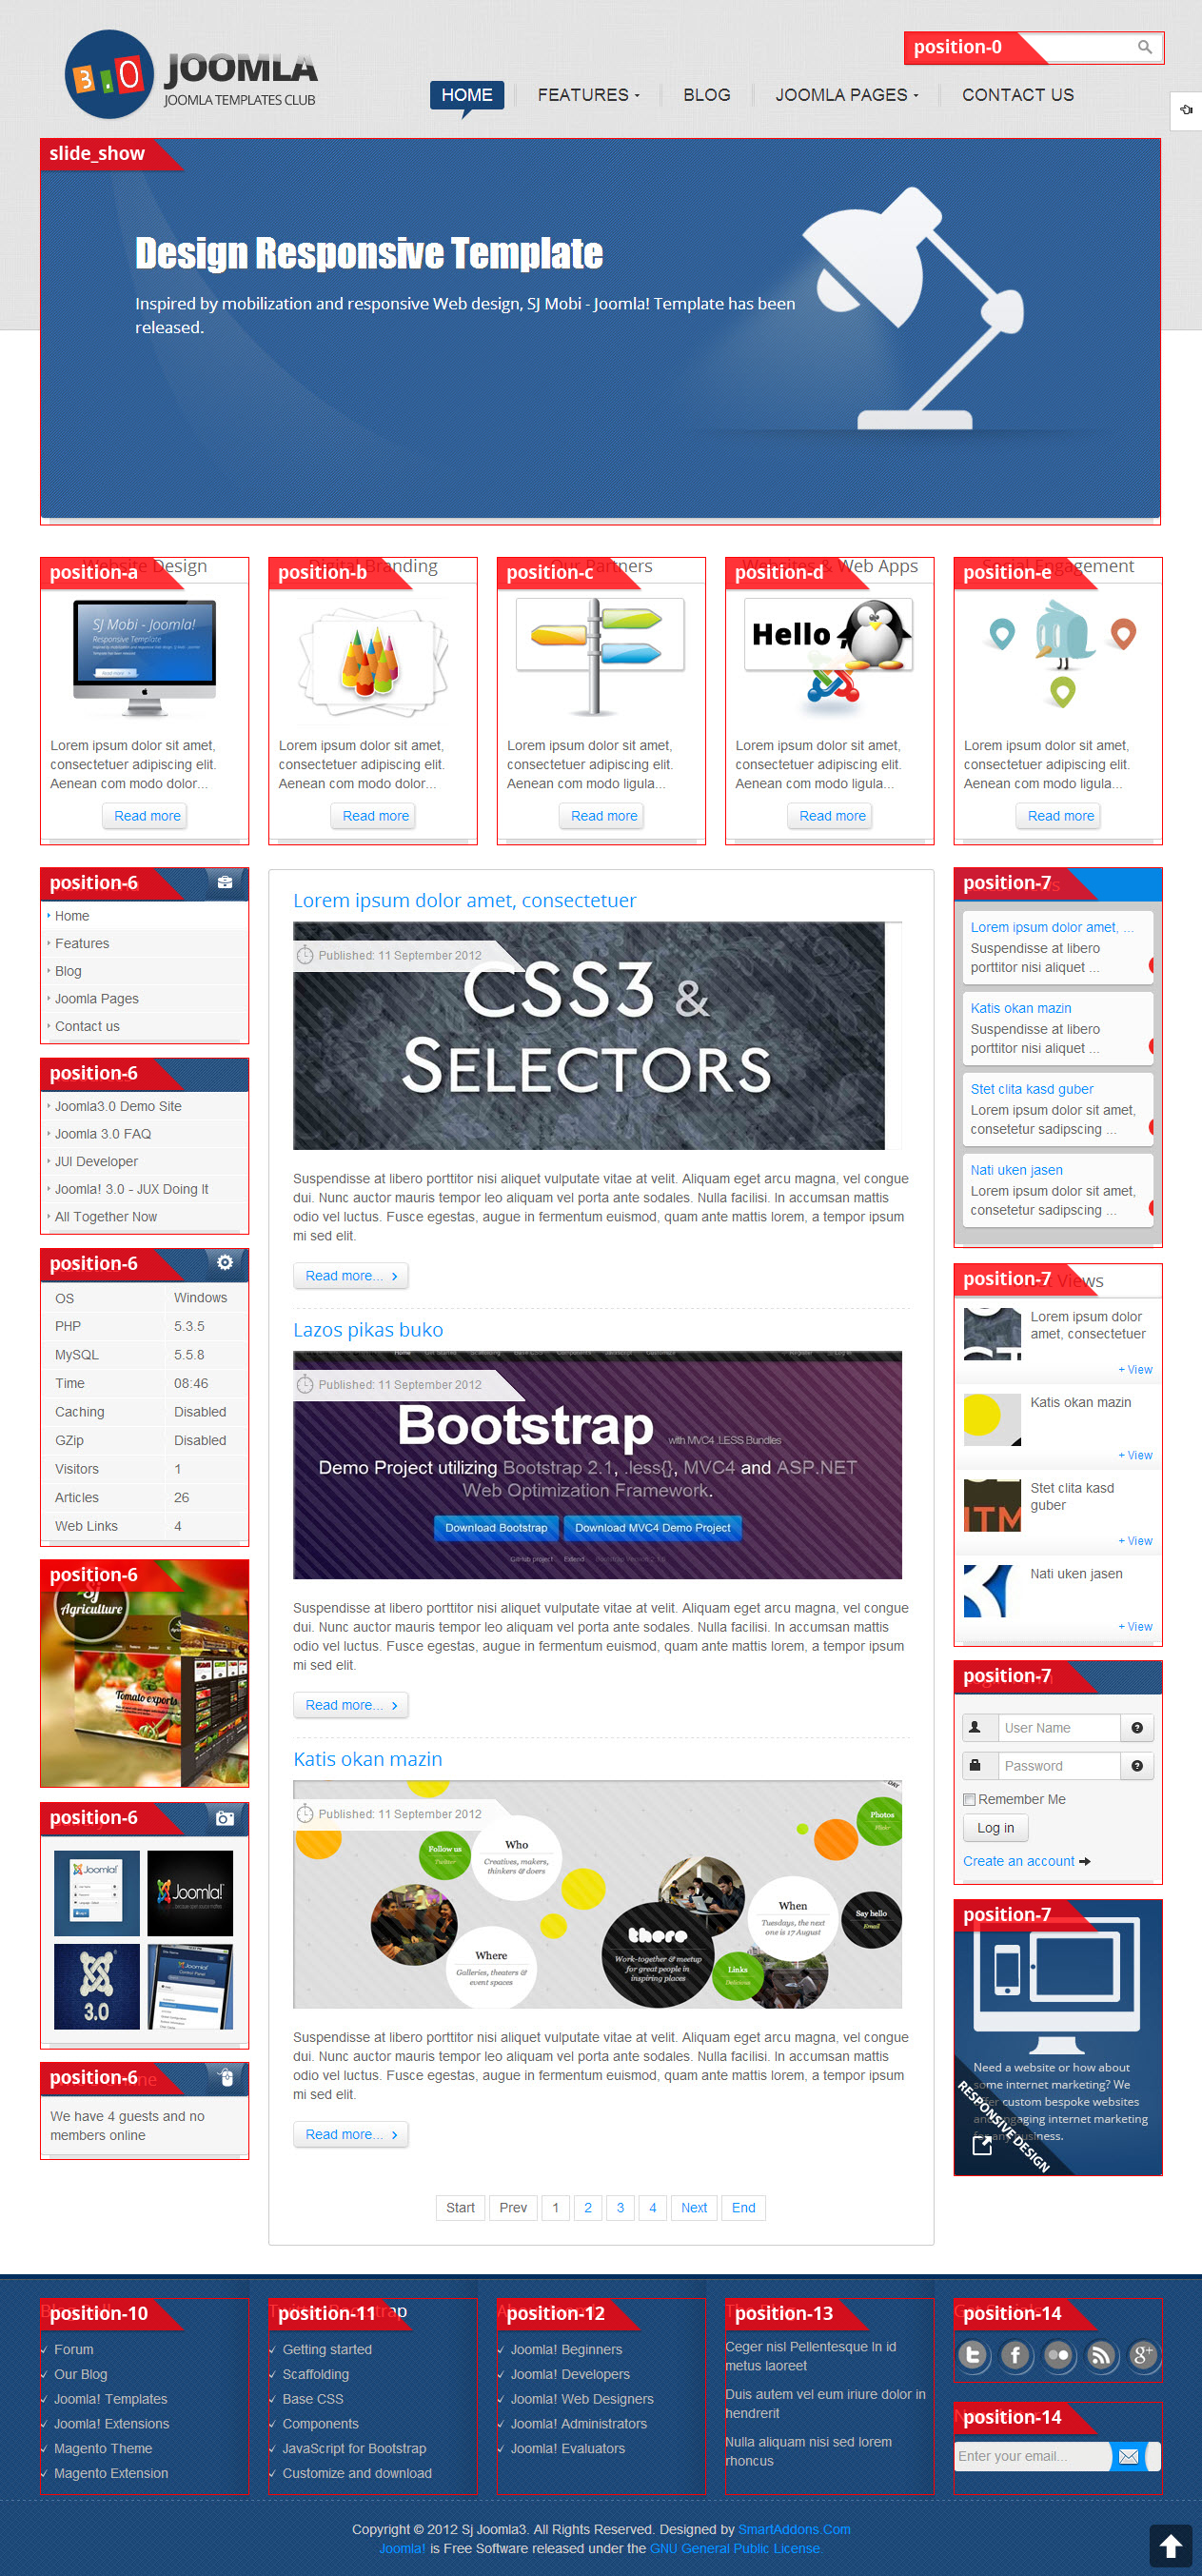 SJ Joomla3 Free Template for Joomla 3x